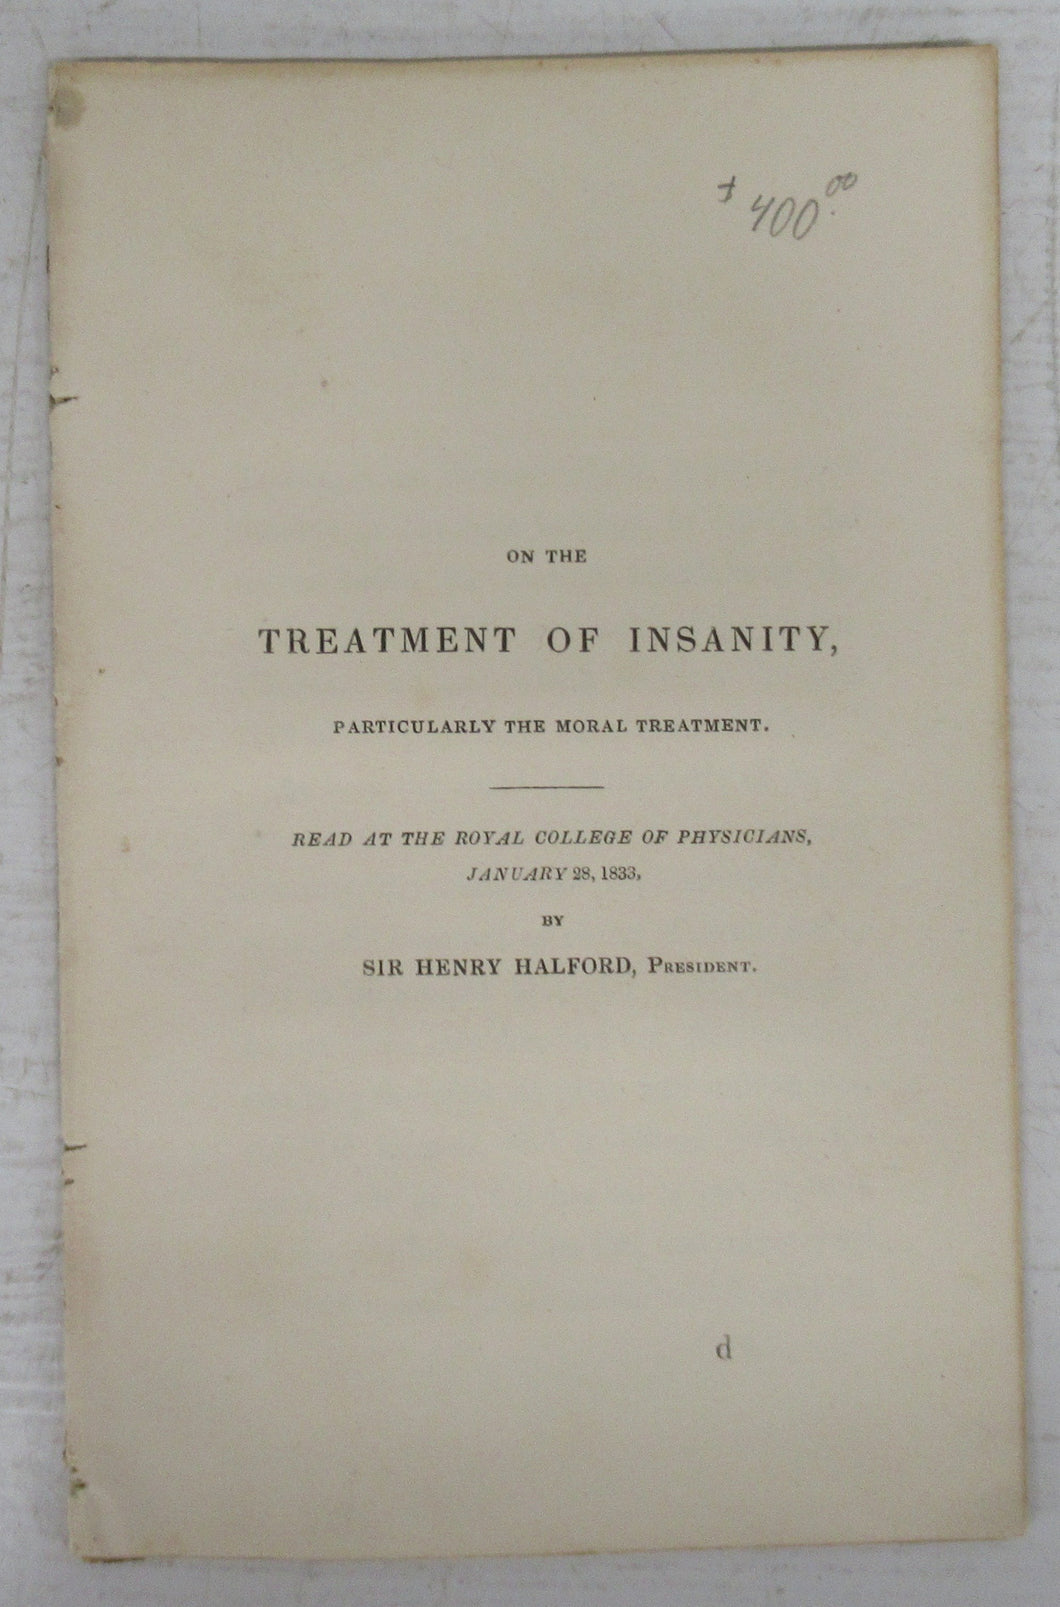 On The Treatment of Insanity, Particularly the Moral Treatment